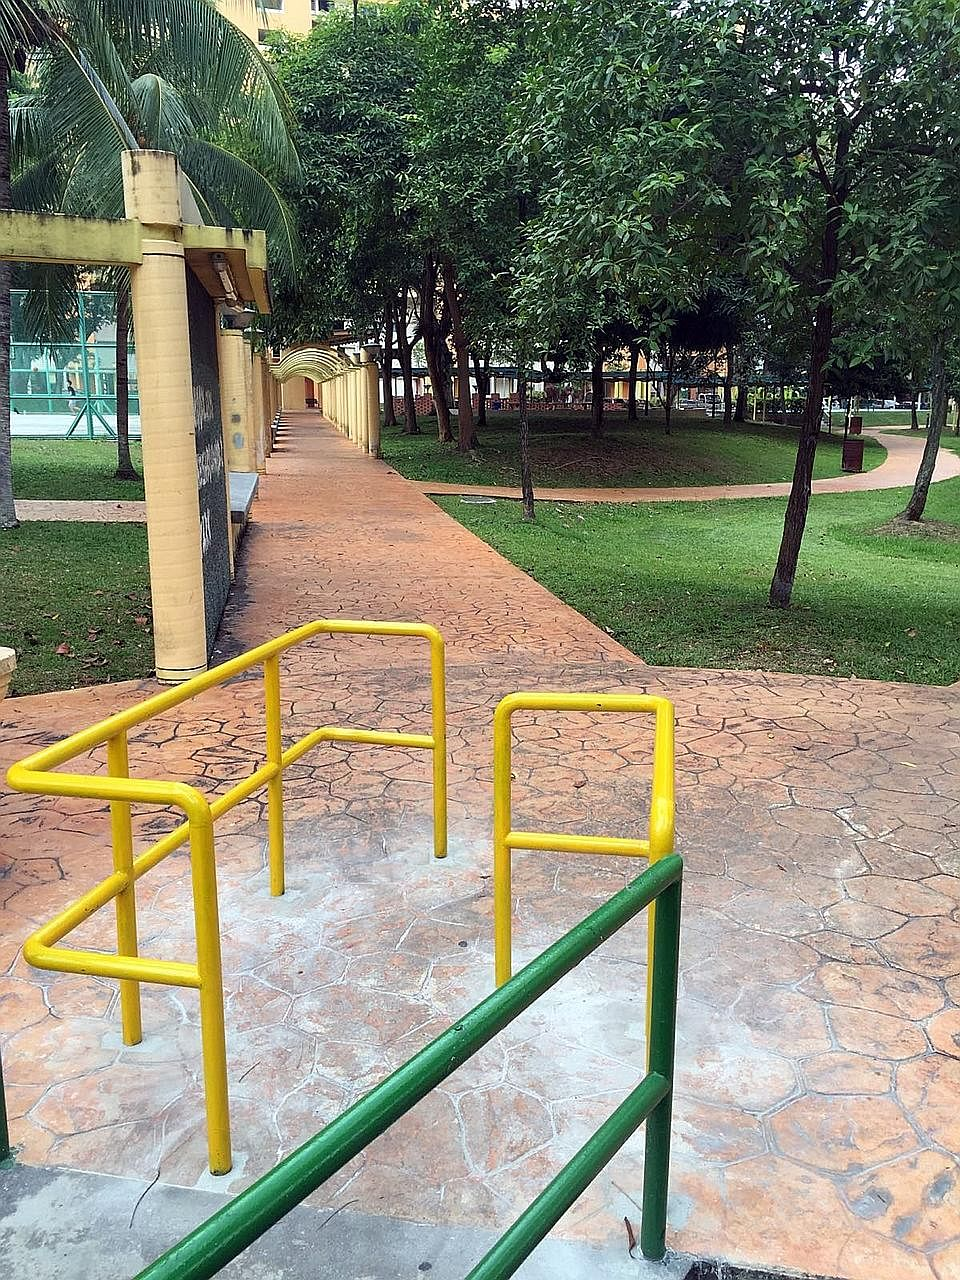 Railings were erected at Marsiling Drive last week to prevent motorcyclists from using the pedestrian footpath. However, they are an added obstacle to wheelchair users and those using mobility aids.